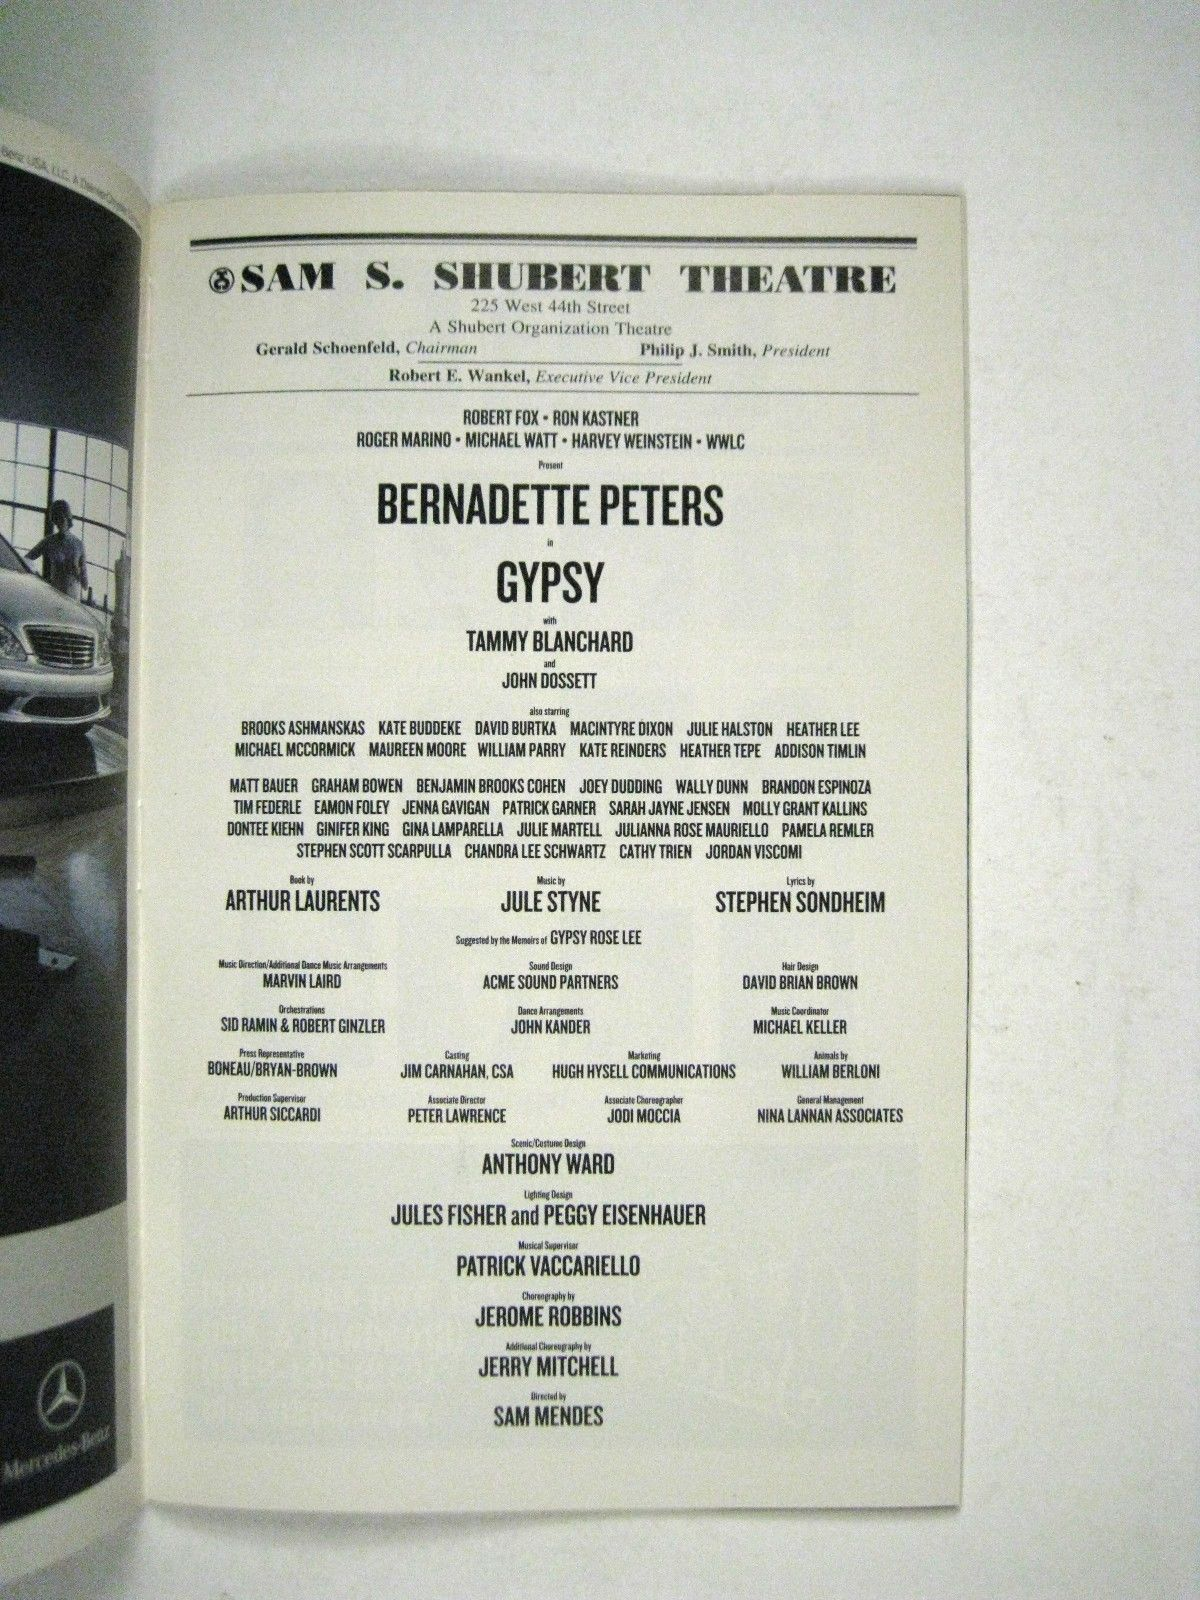 Gypsy Playbill 2003 Sam Schubert Theatre Bernadette Peters Tony Blanchard Ticket